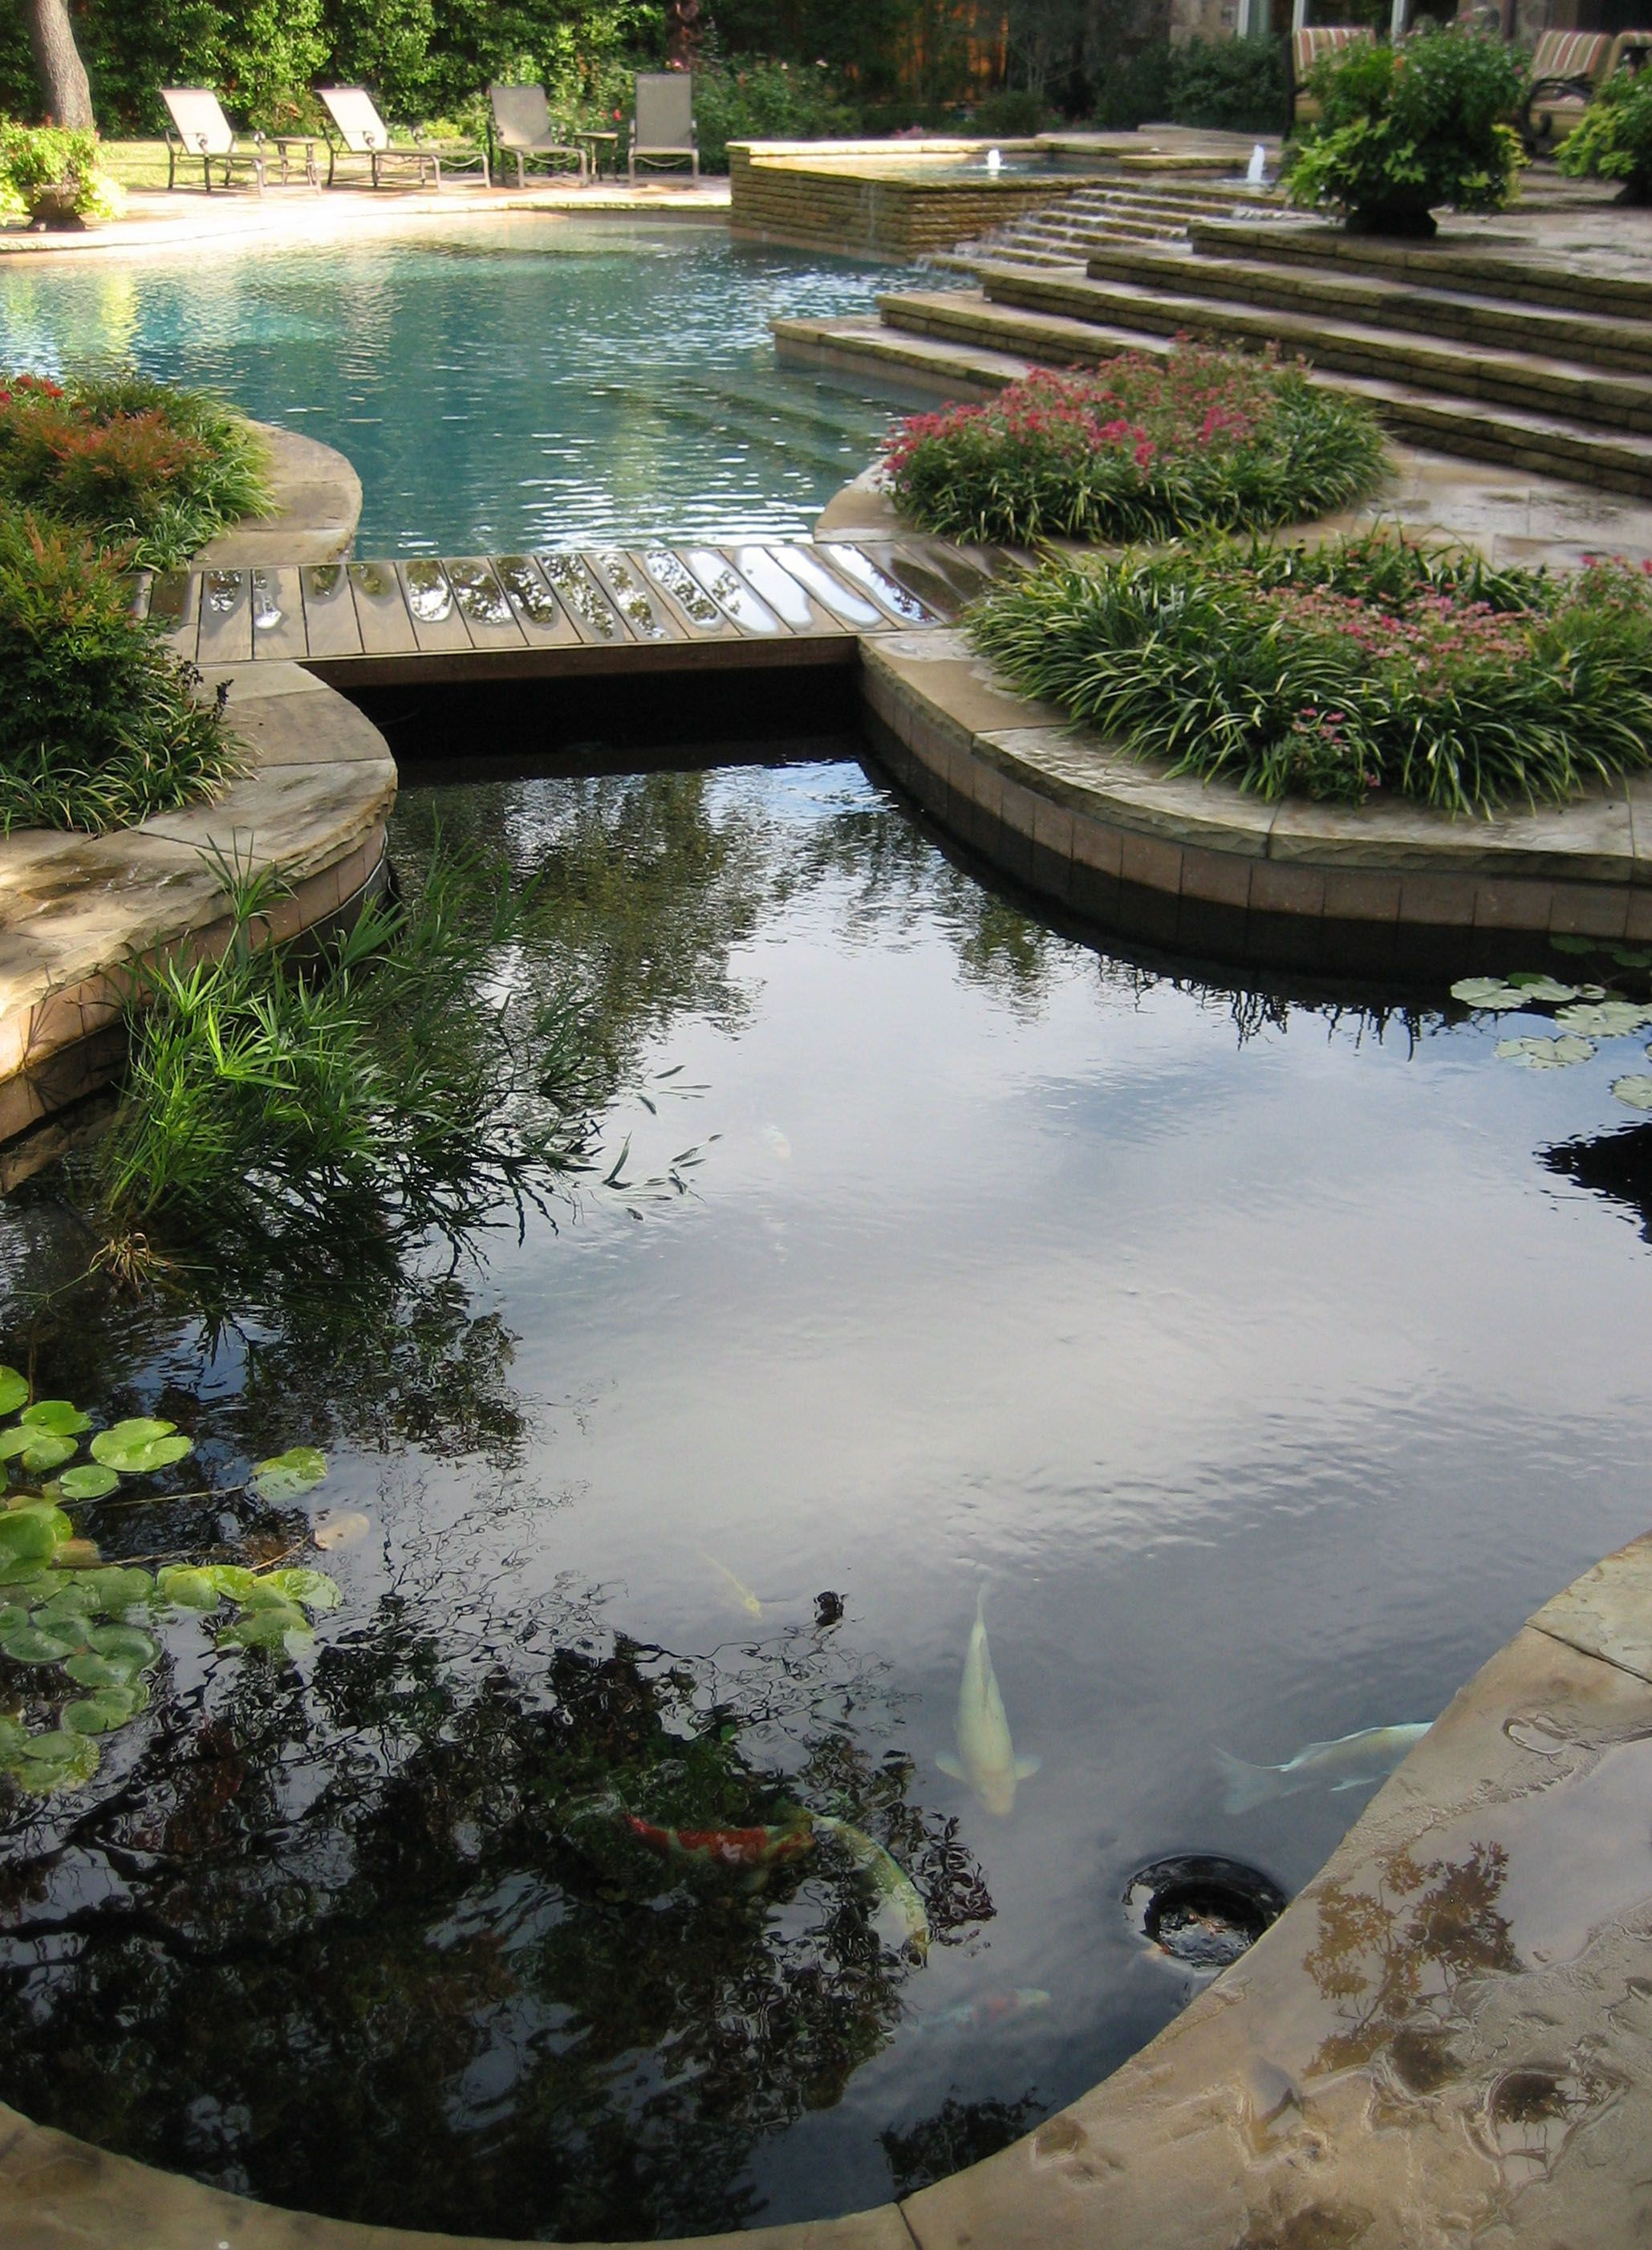 Koi pond and pool design with hidden barrier underneath for Koi pond design